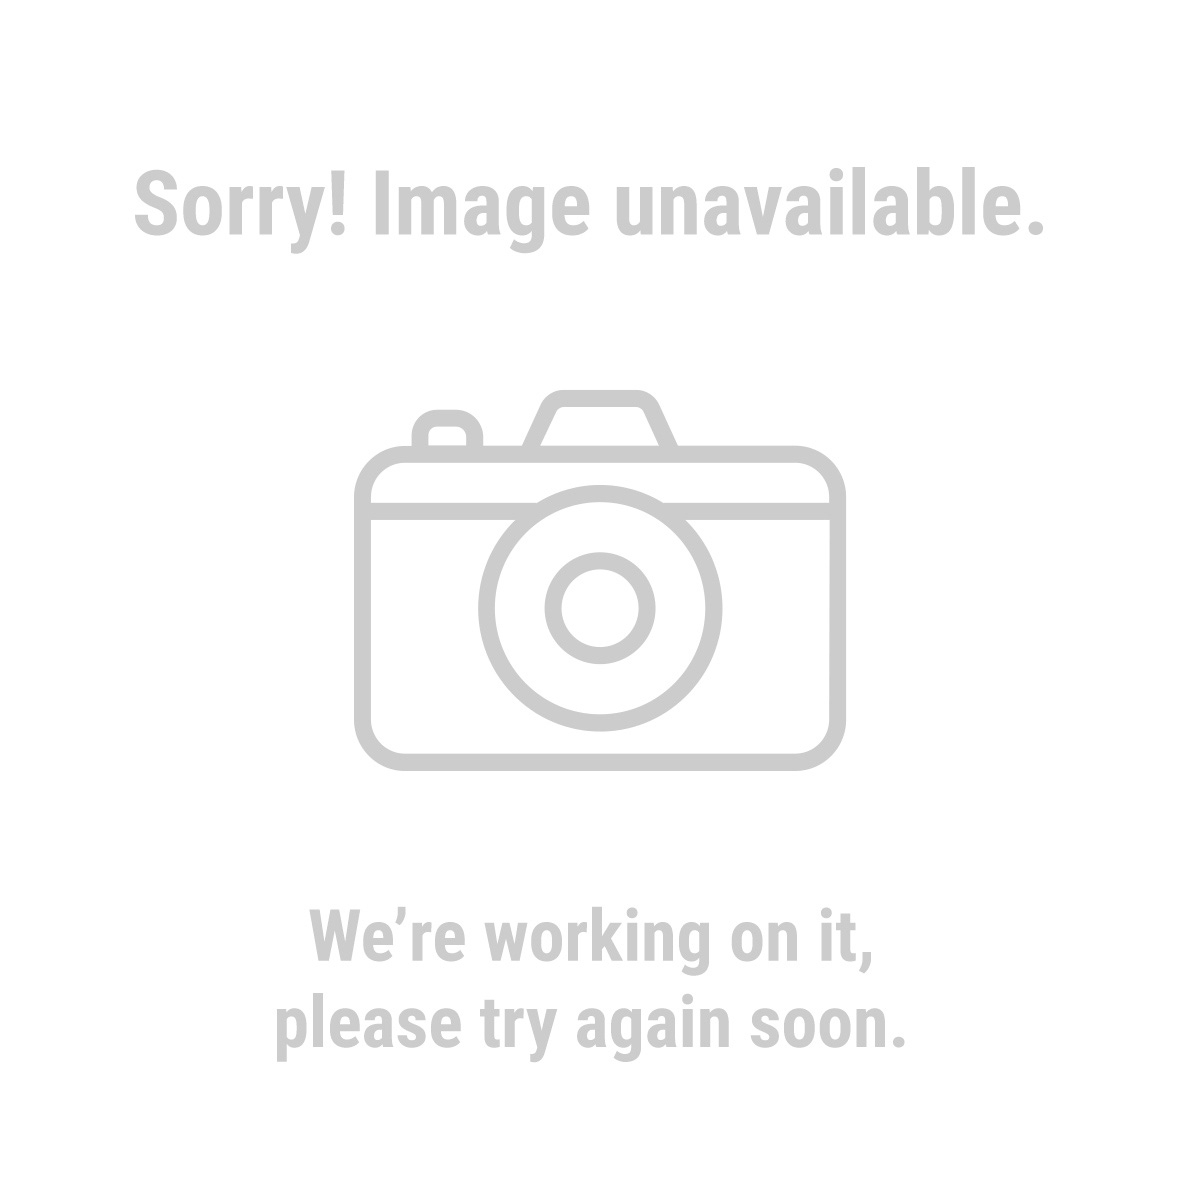 Bunker Hill Security® 94983 Door/Window Entry Alarm